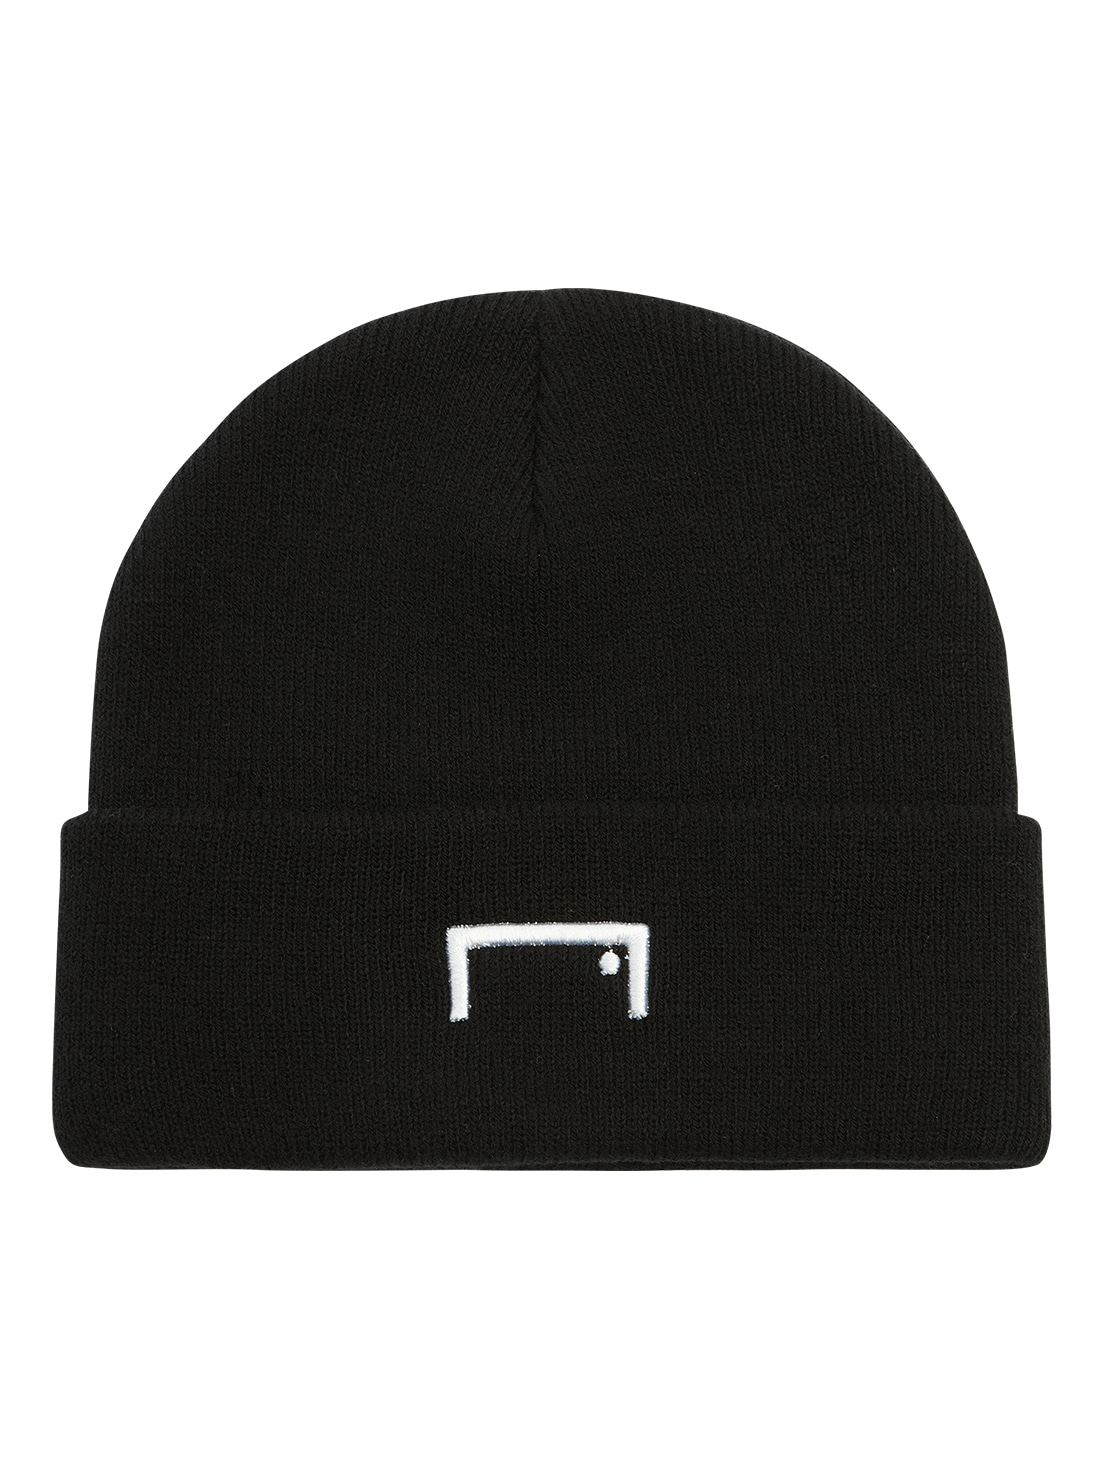 (Sold Out)RESPECT LABEL BEANIE - BLACK